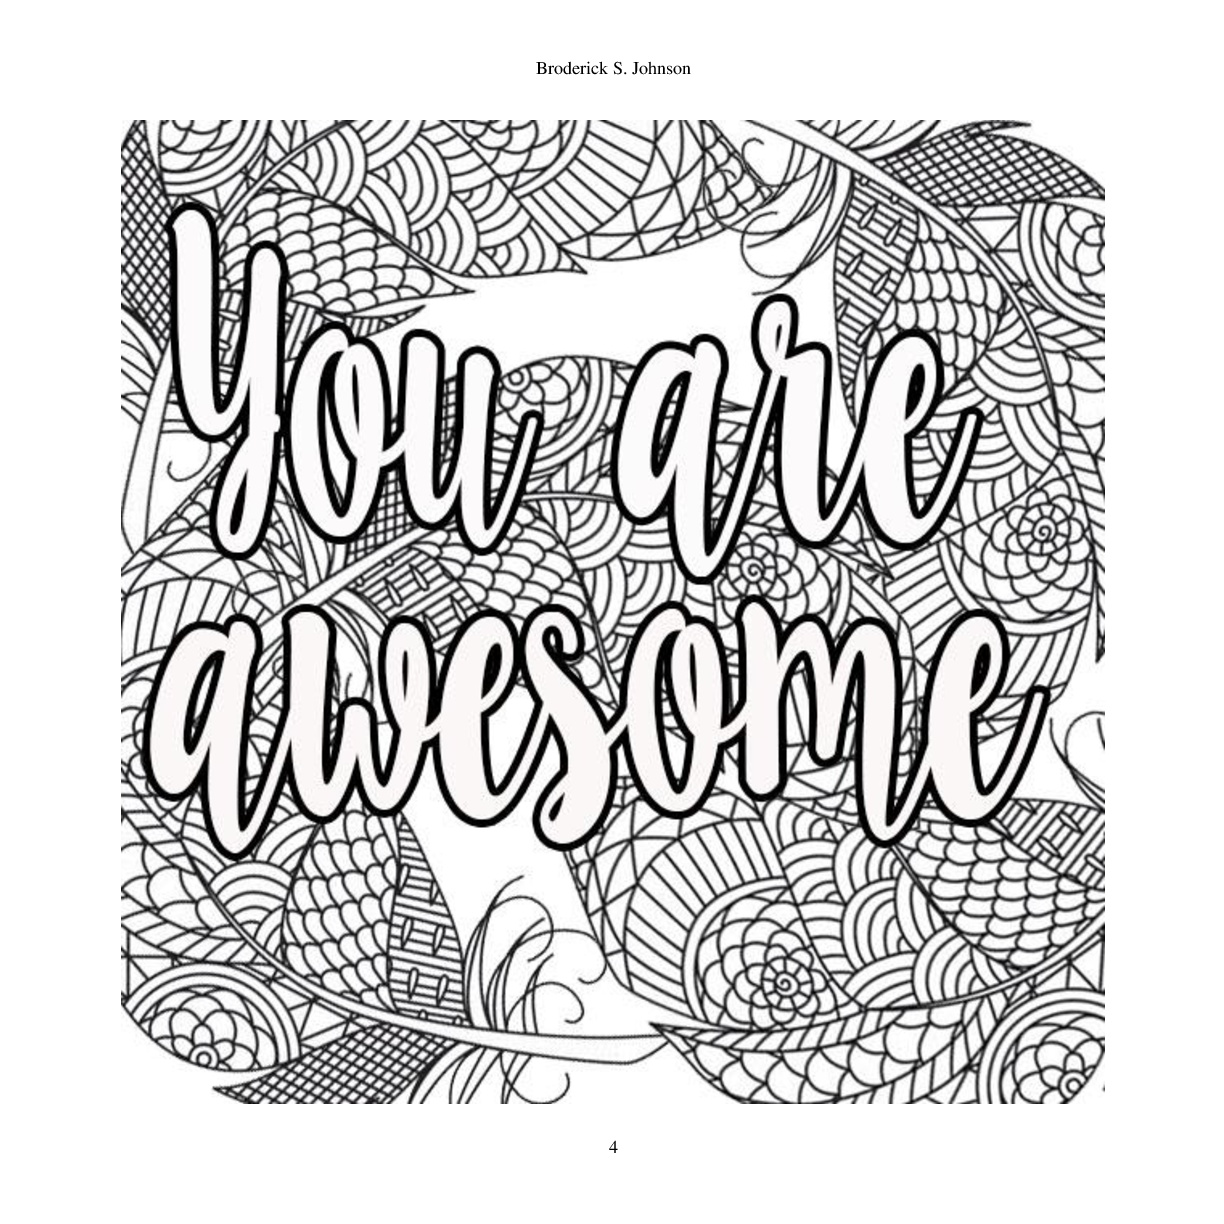 1224x1224 Motivational Coloring Pages With Wallpapers Hd Desktop